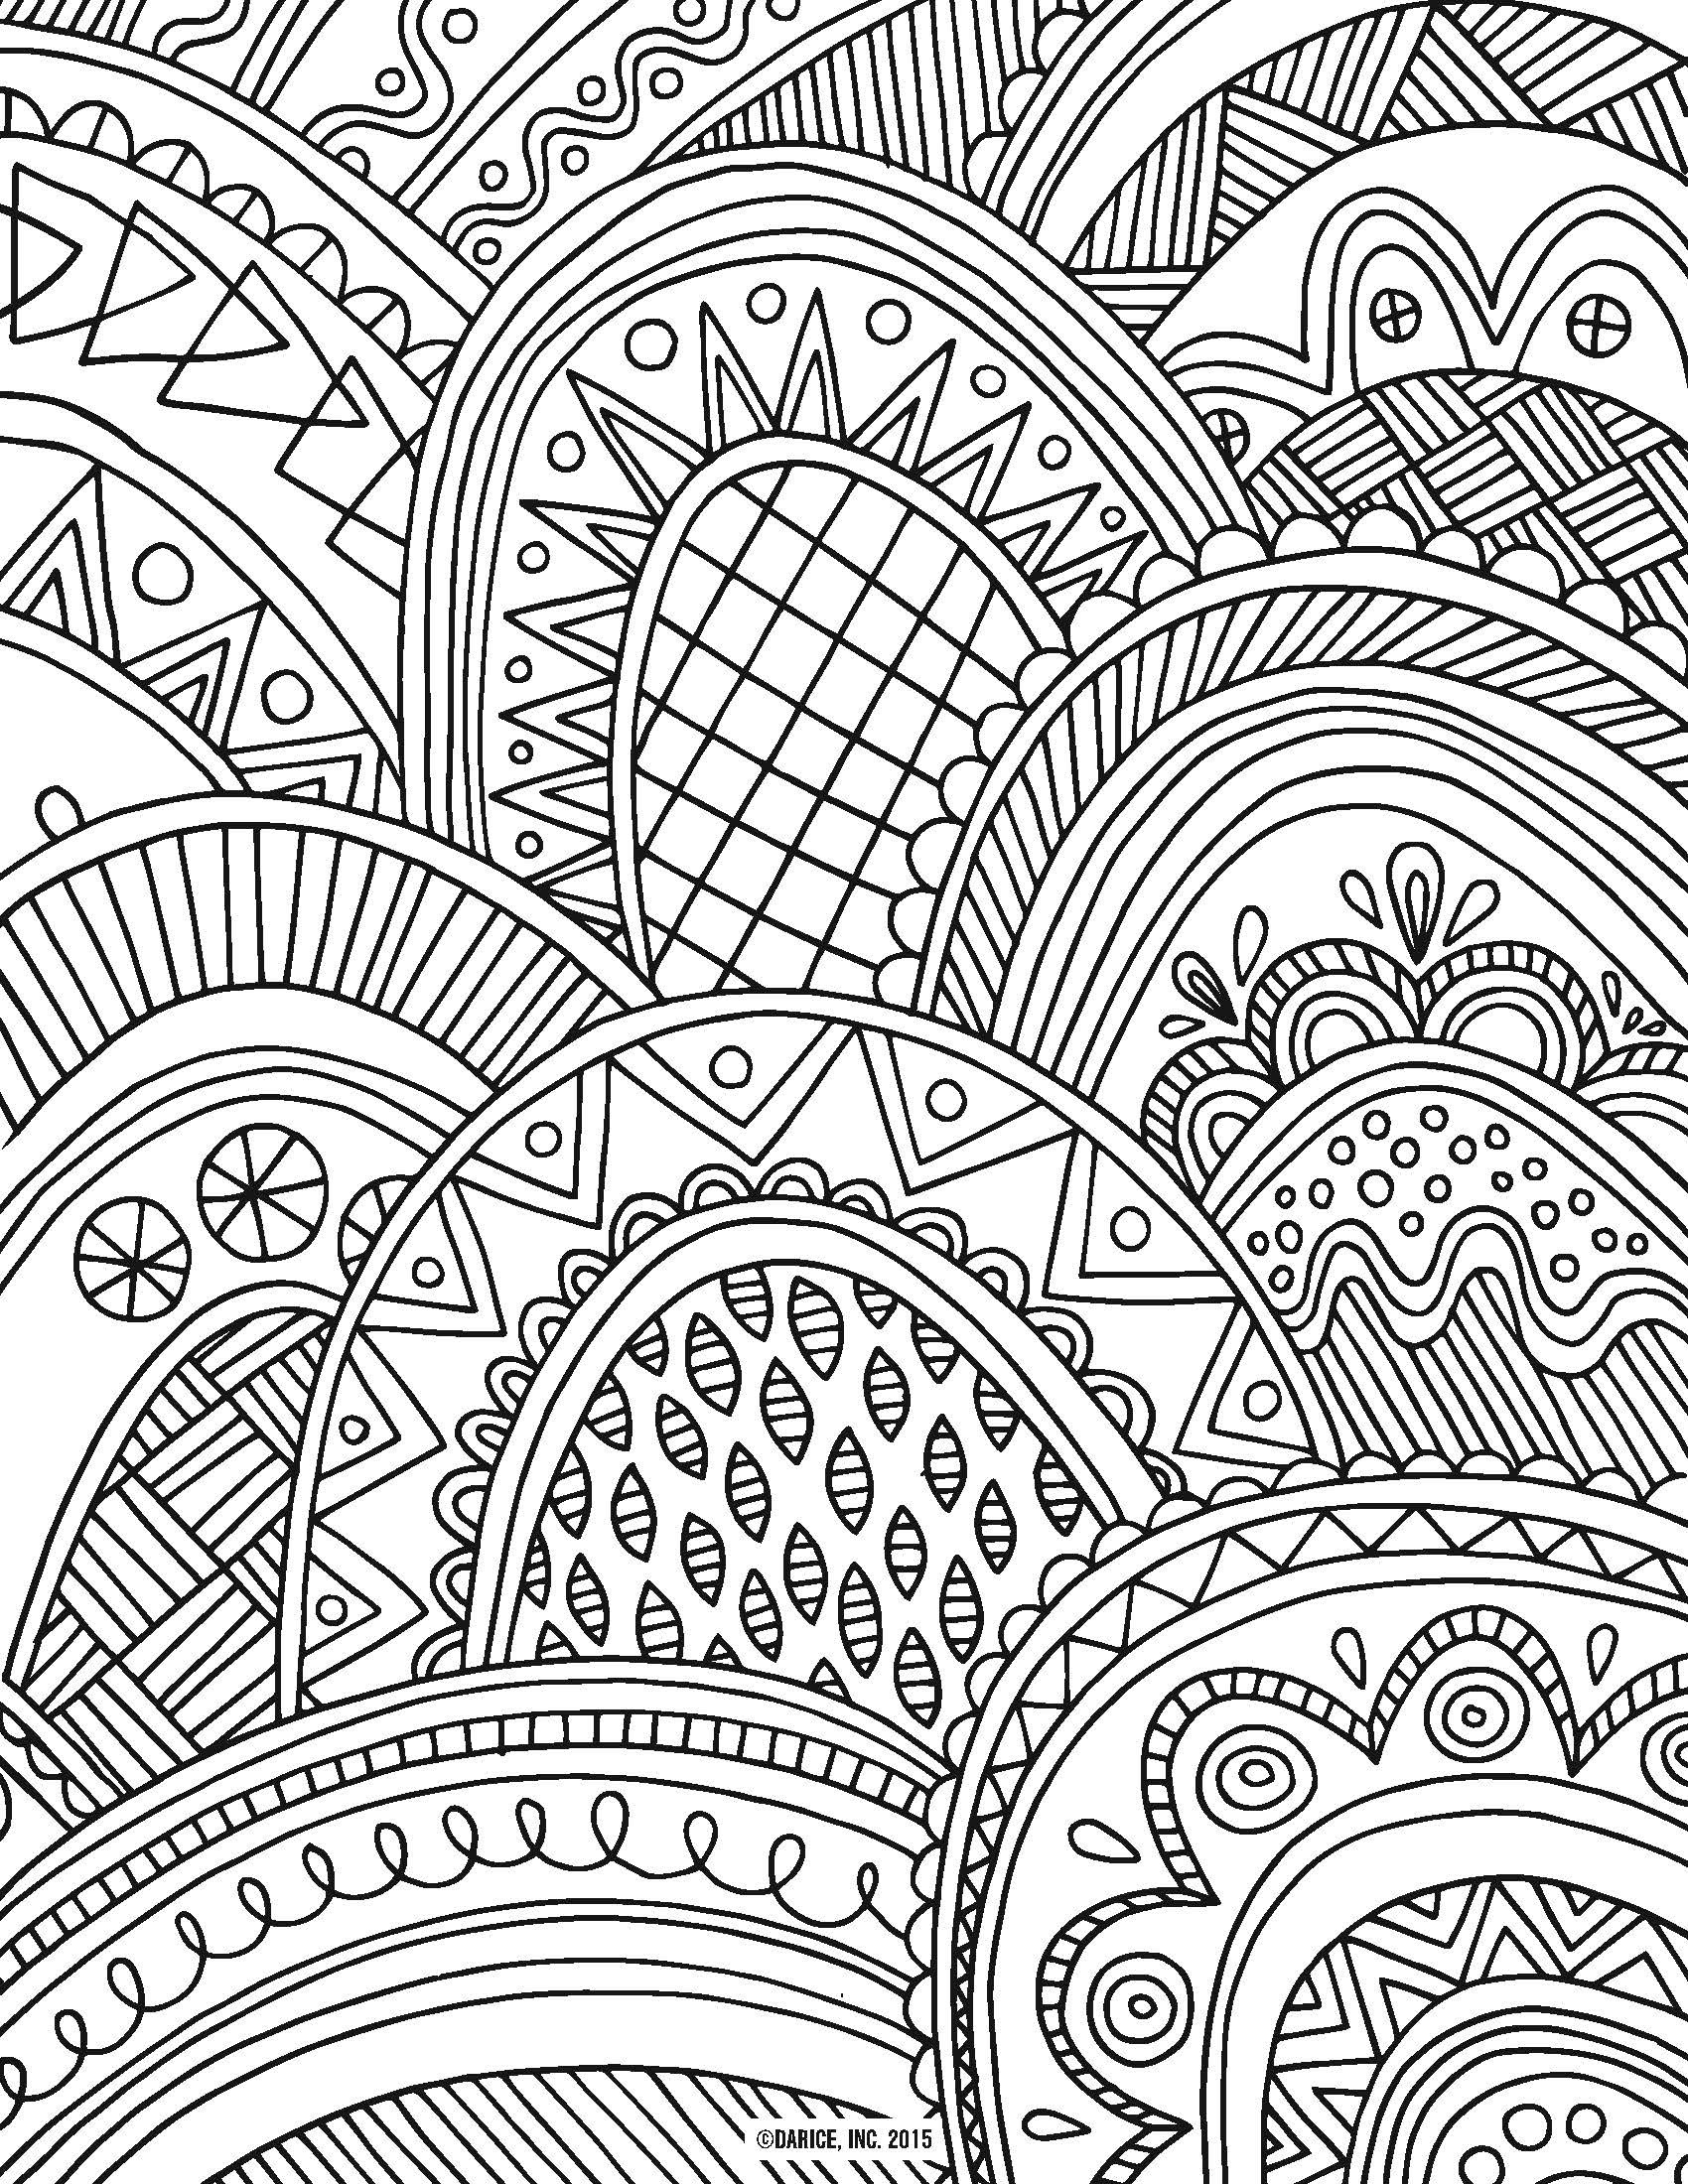 Best ideas about Large Adult Coloring Books . Save or Pin 9 Free Printable Adult Coloring Pages Now.